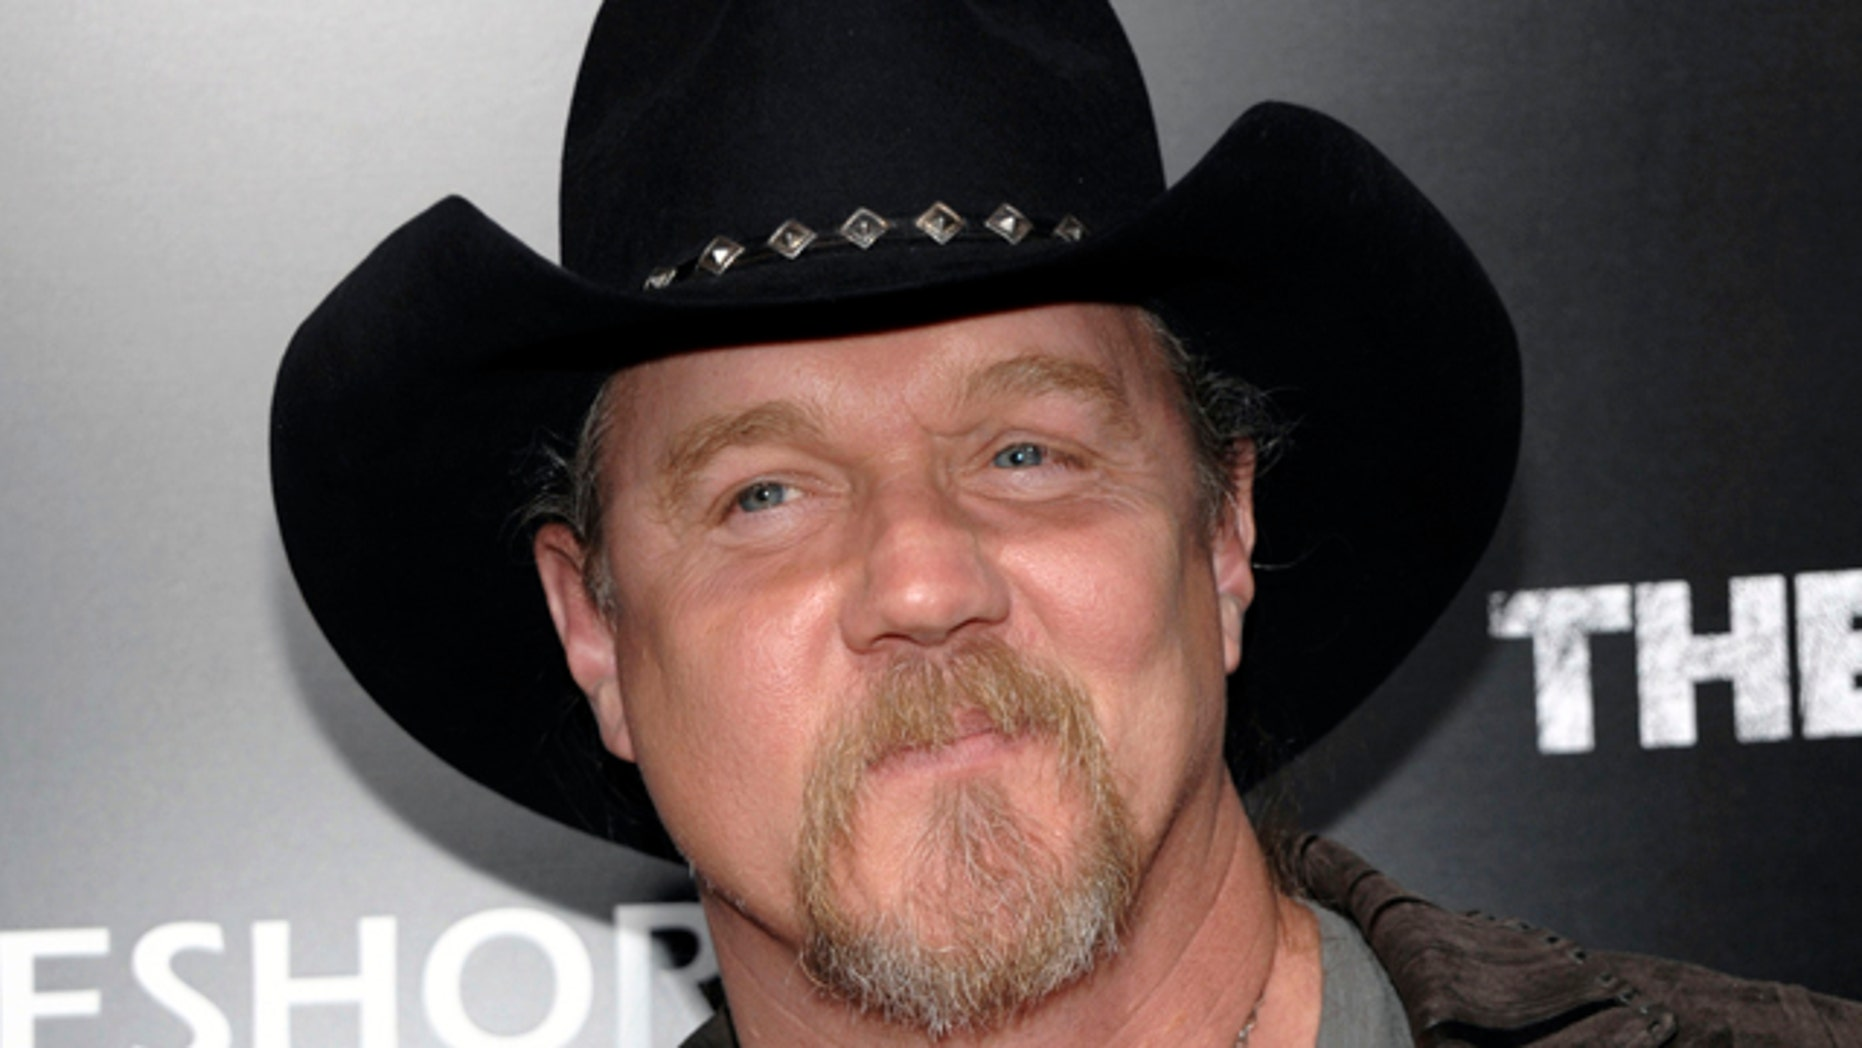 """FILE - In this March 10, 2011 file photo, musician Trace Adkins arrives at the premiere of the feature film """"The Lincoln Lawyer"""" in Los Angeles. Country music star Trace Adkins has lost his home to a fire."""